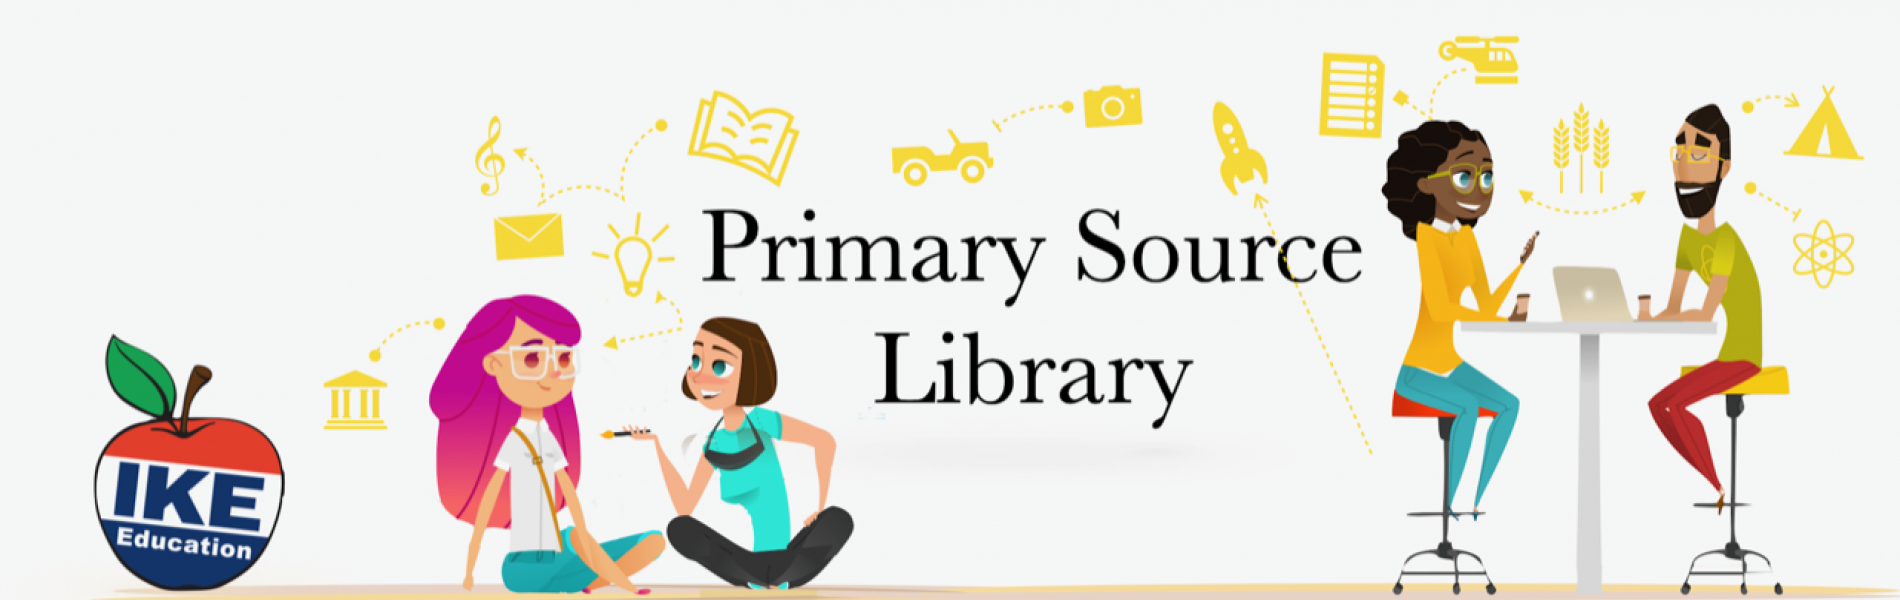 Primary Source Library illustration